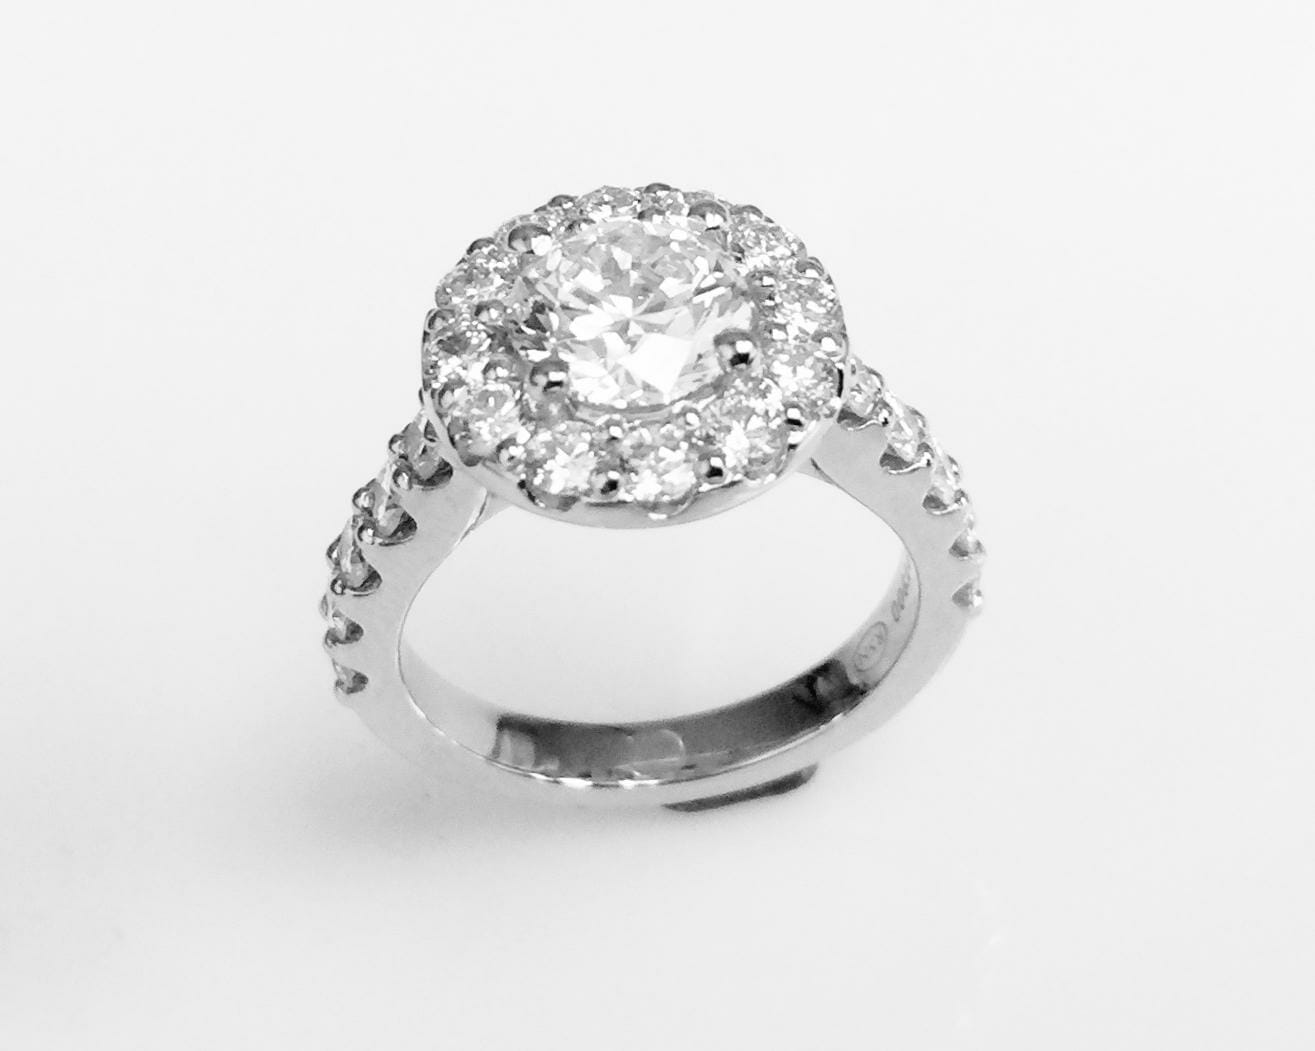 Diamond halo engagement ring with scallop shank